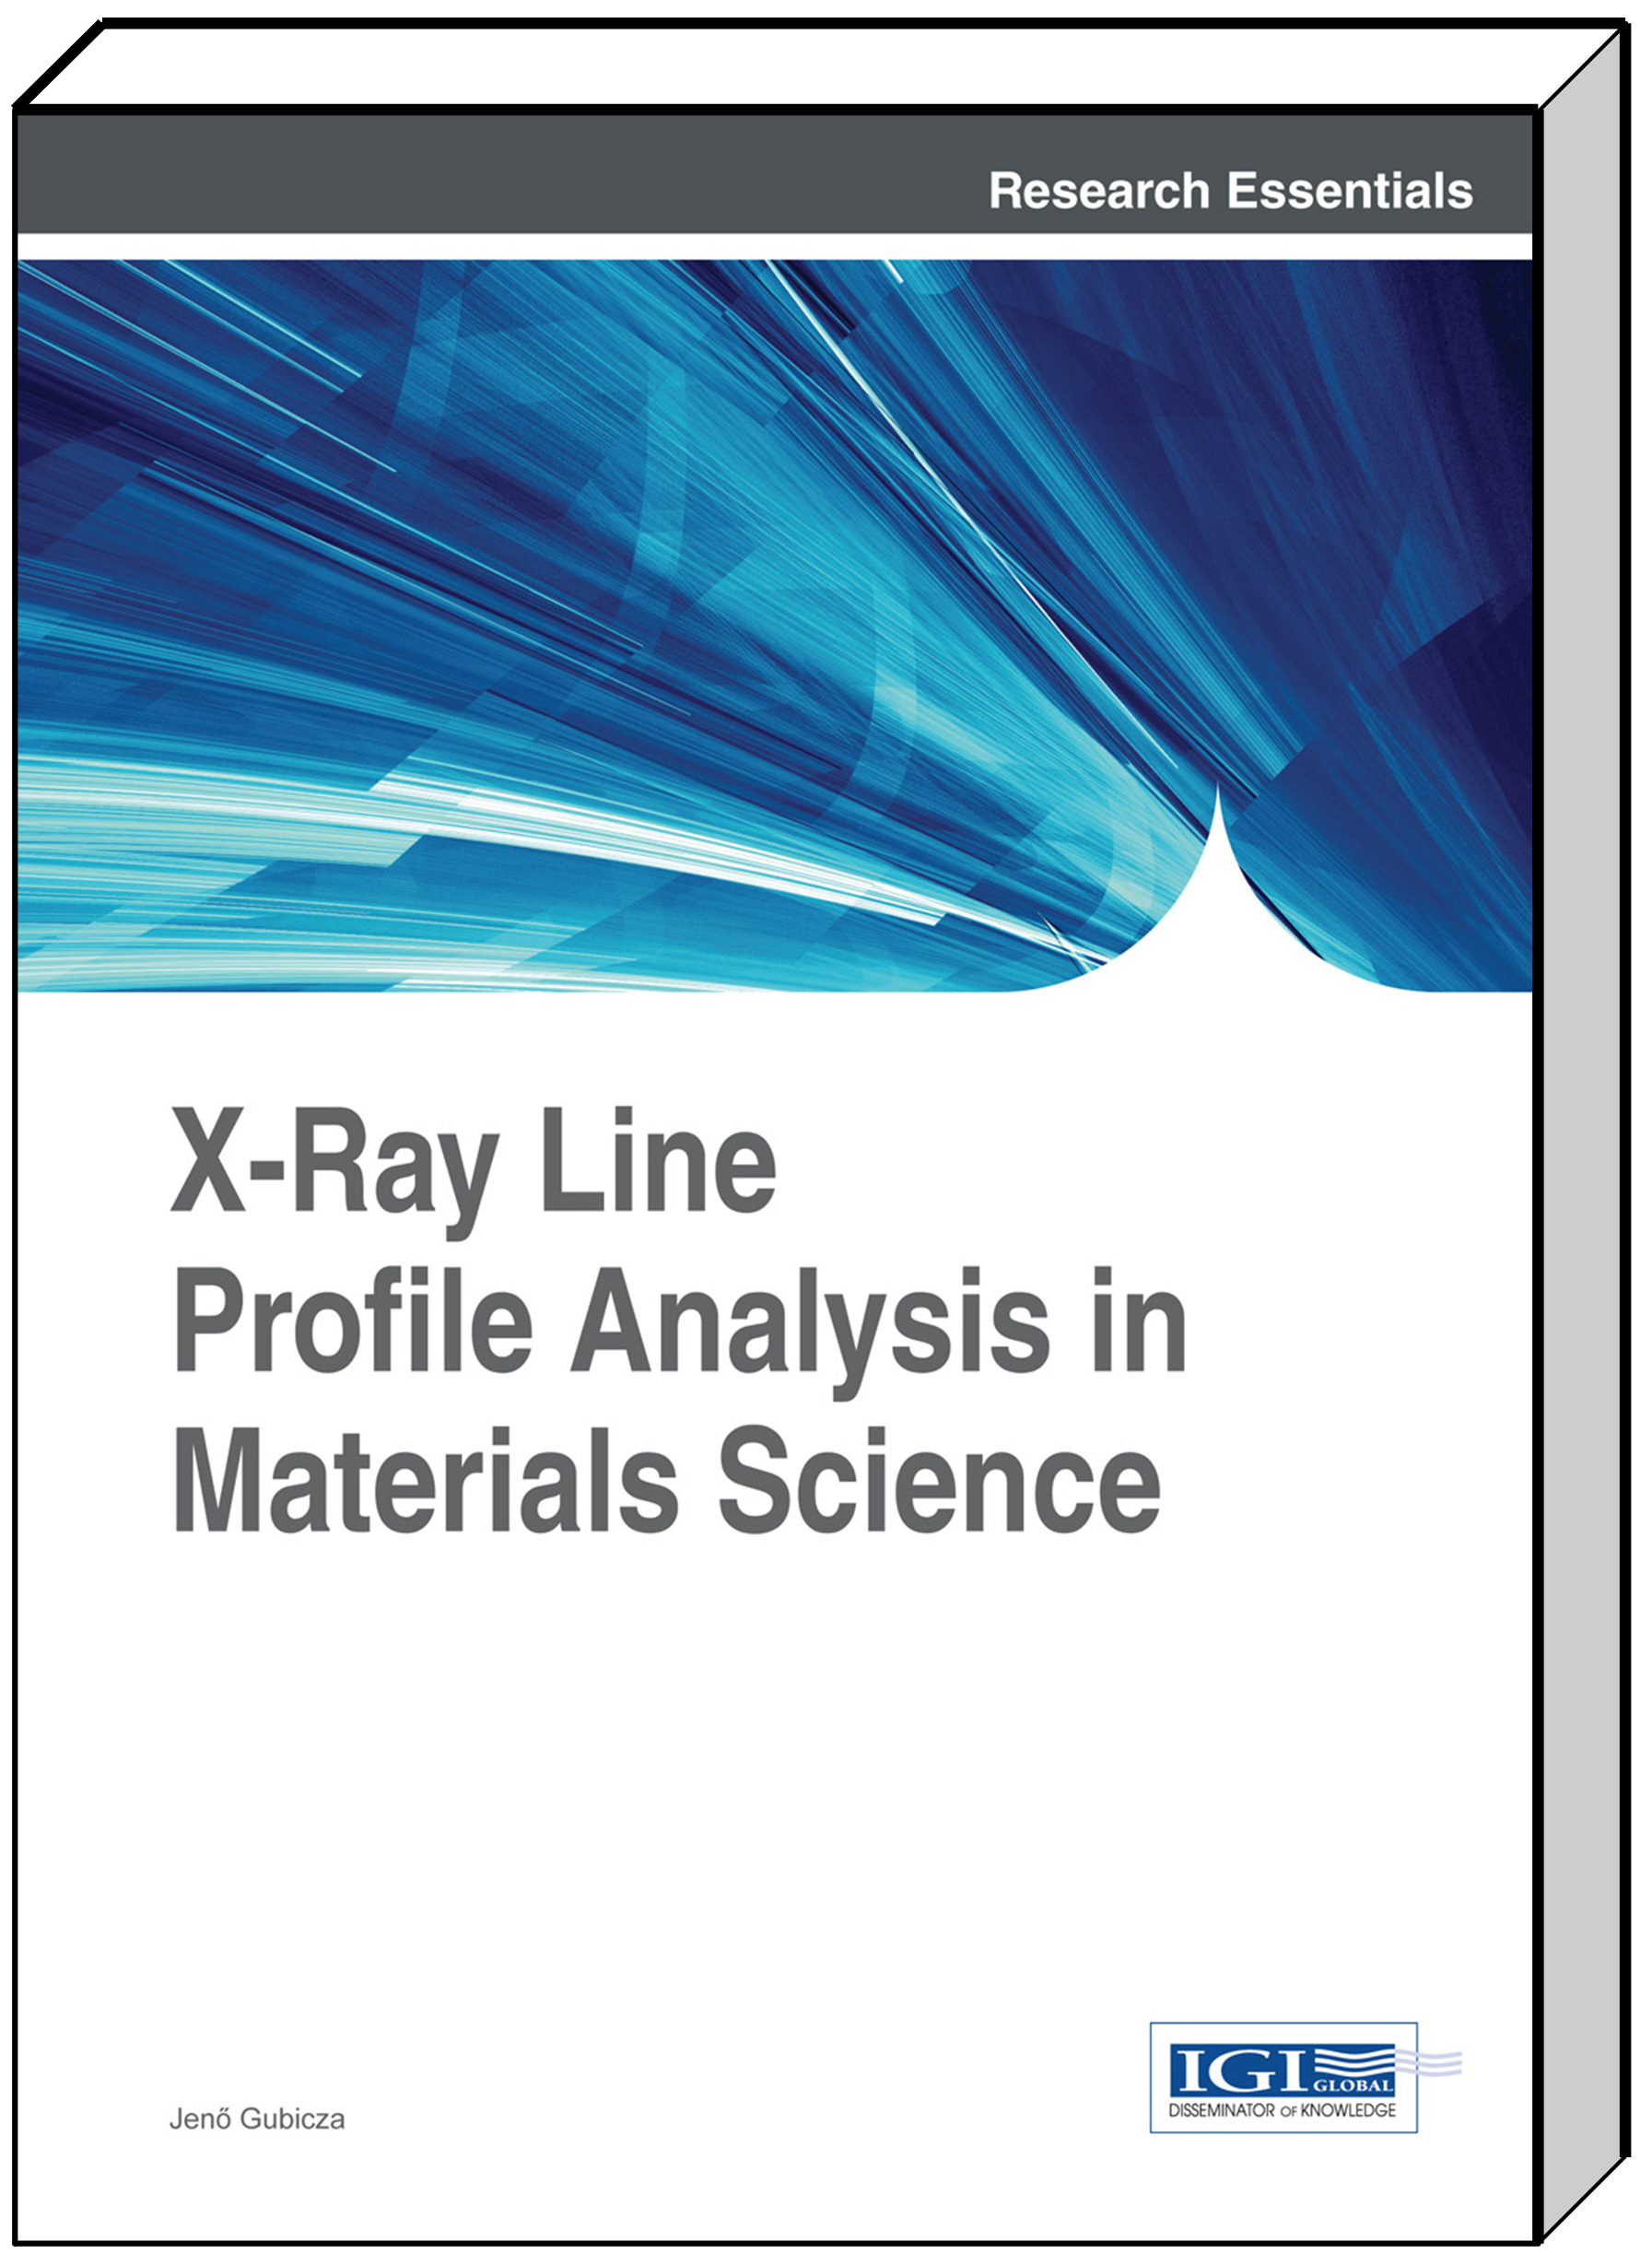 X-ray-line-profile-analysis-in-mater-sci